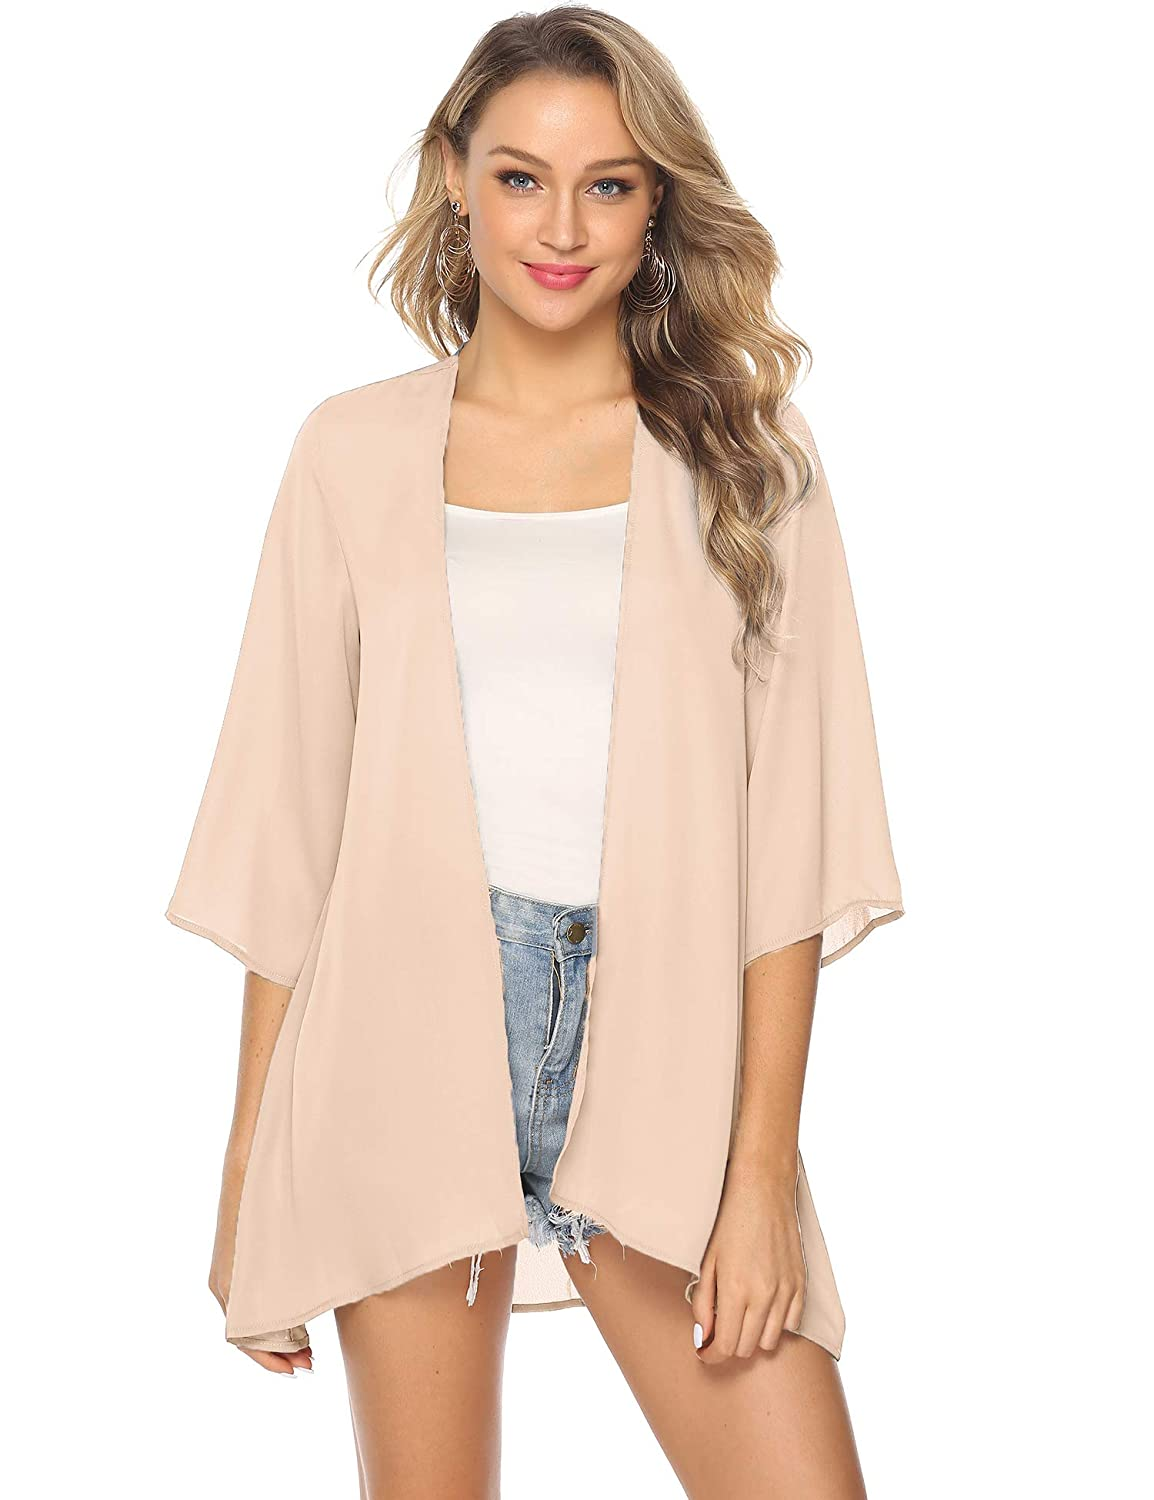 168dd6223 Abollria Women's Beach Cover up Chiffon Floral Boho Summer Cardigan Kimono  Blouse: Amazon.co.uk: Clothing